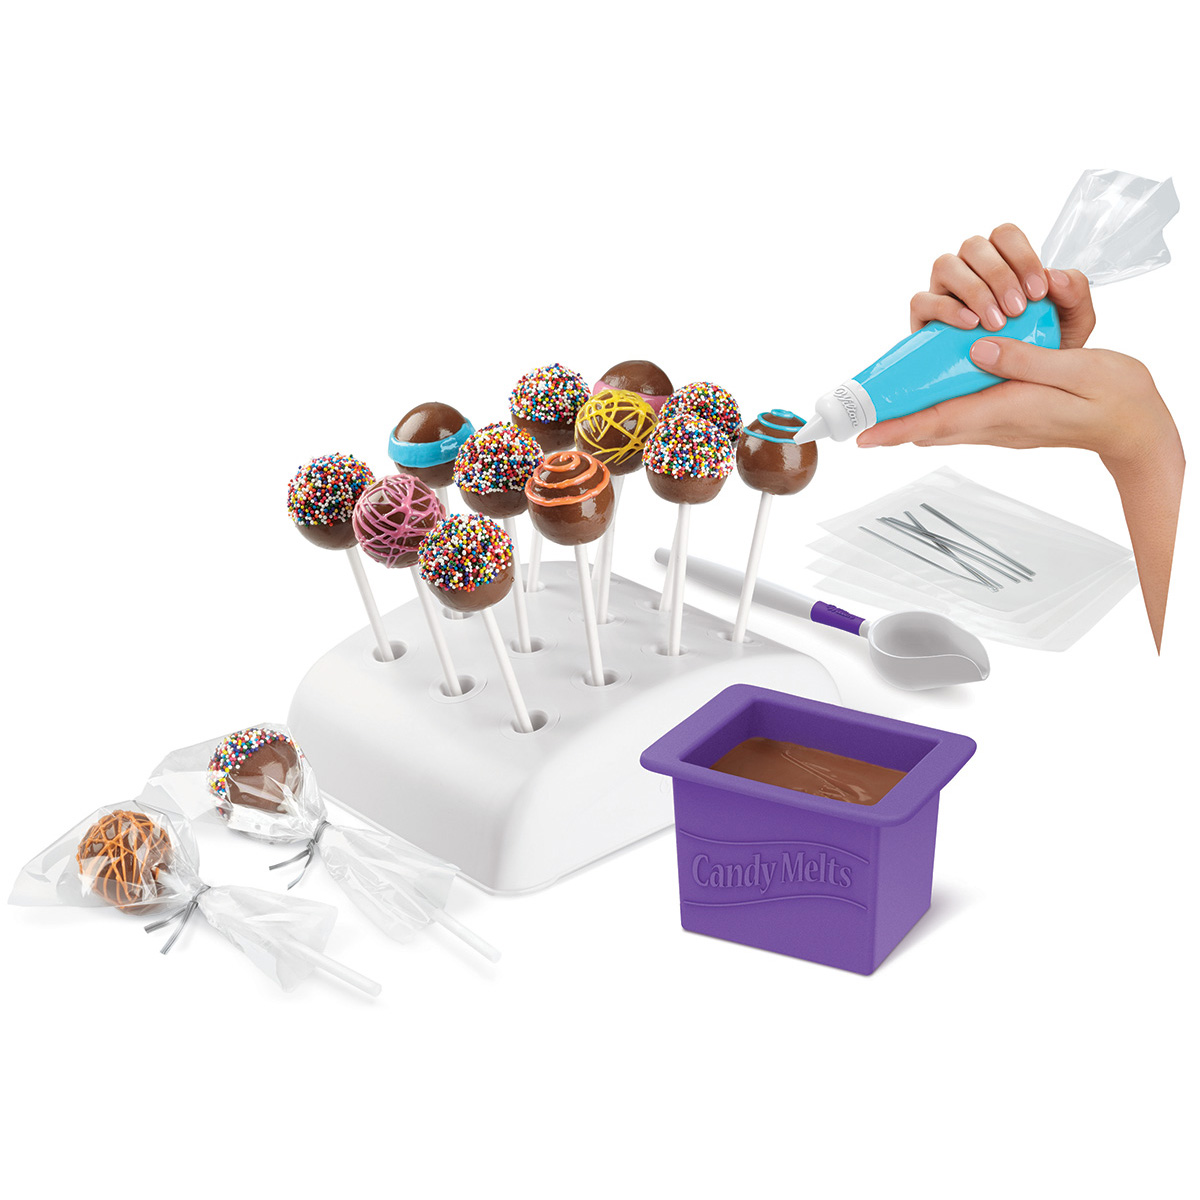 Wilton Candy Melt Dip \u0027N Decorate Essentials Set